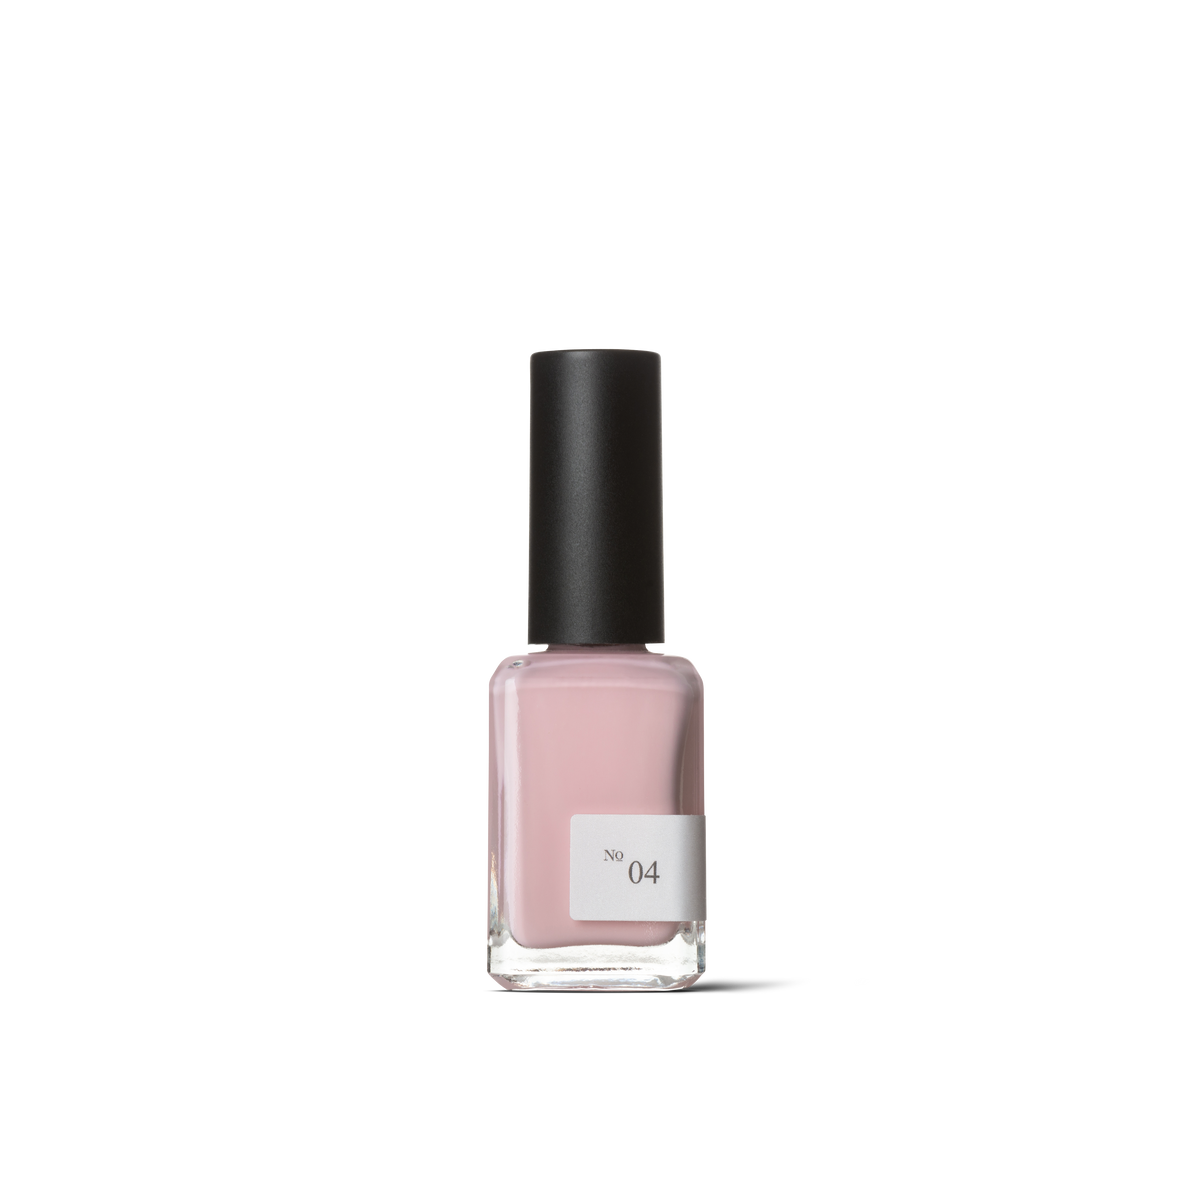 Nailpolish no. 04 (14 ml)